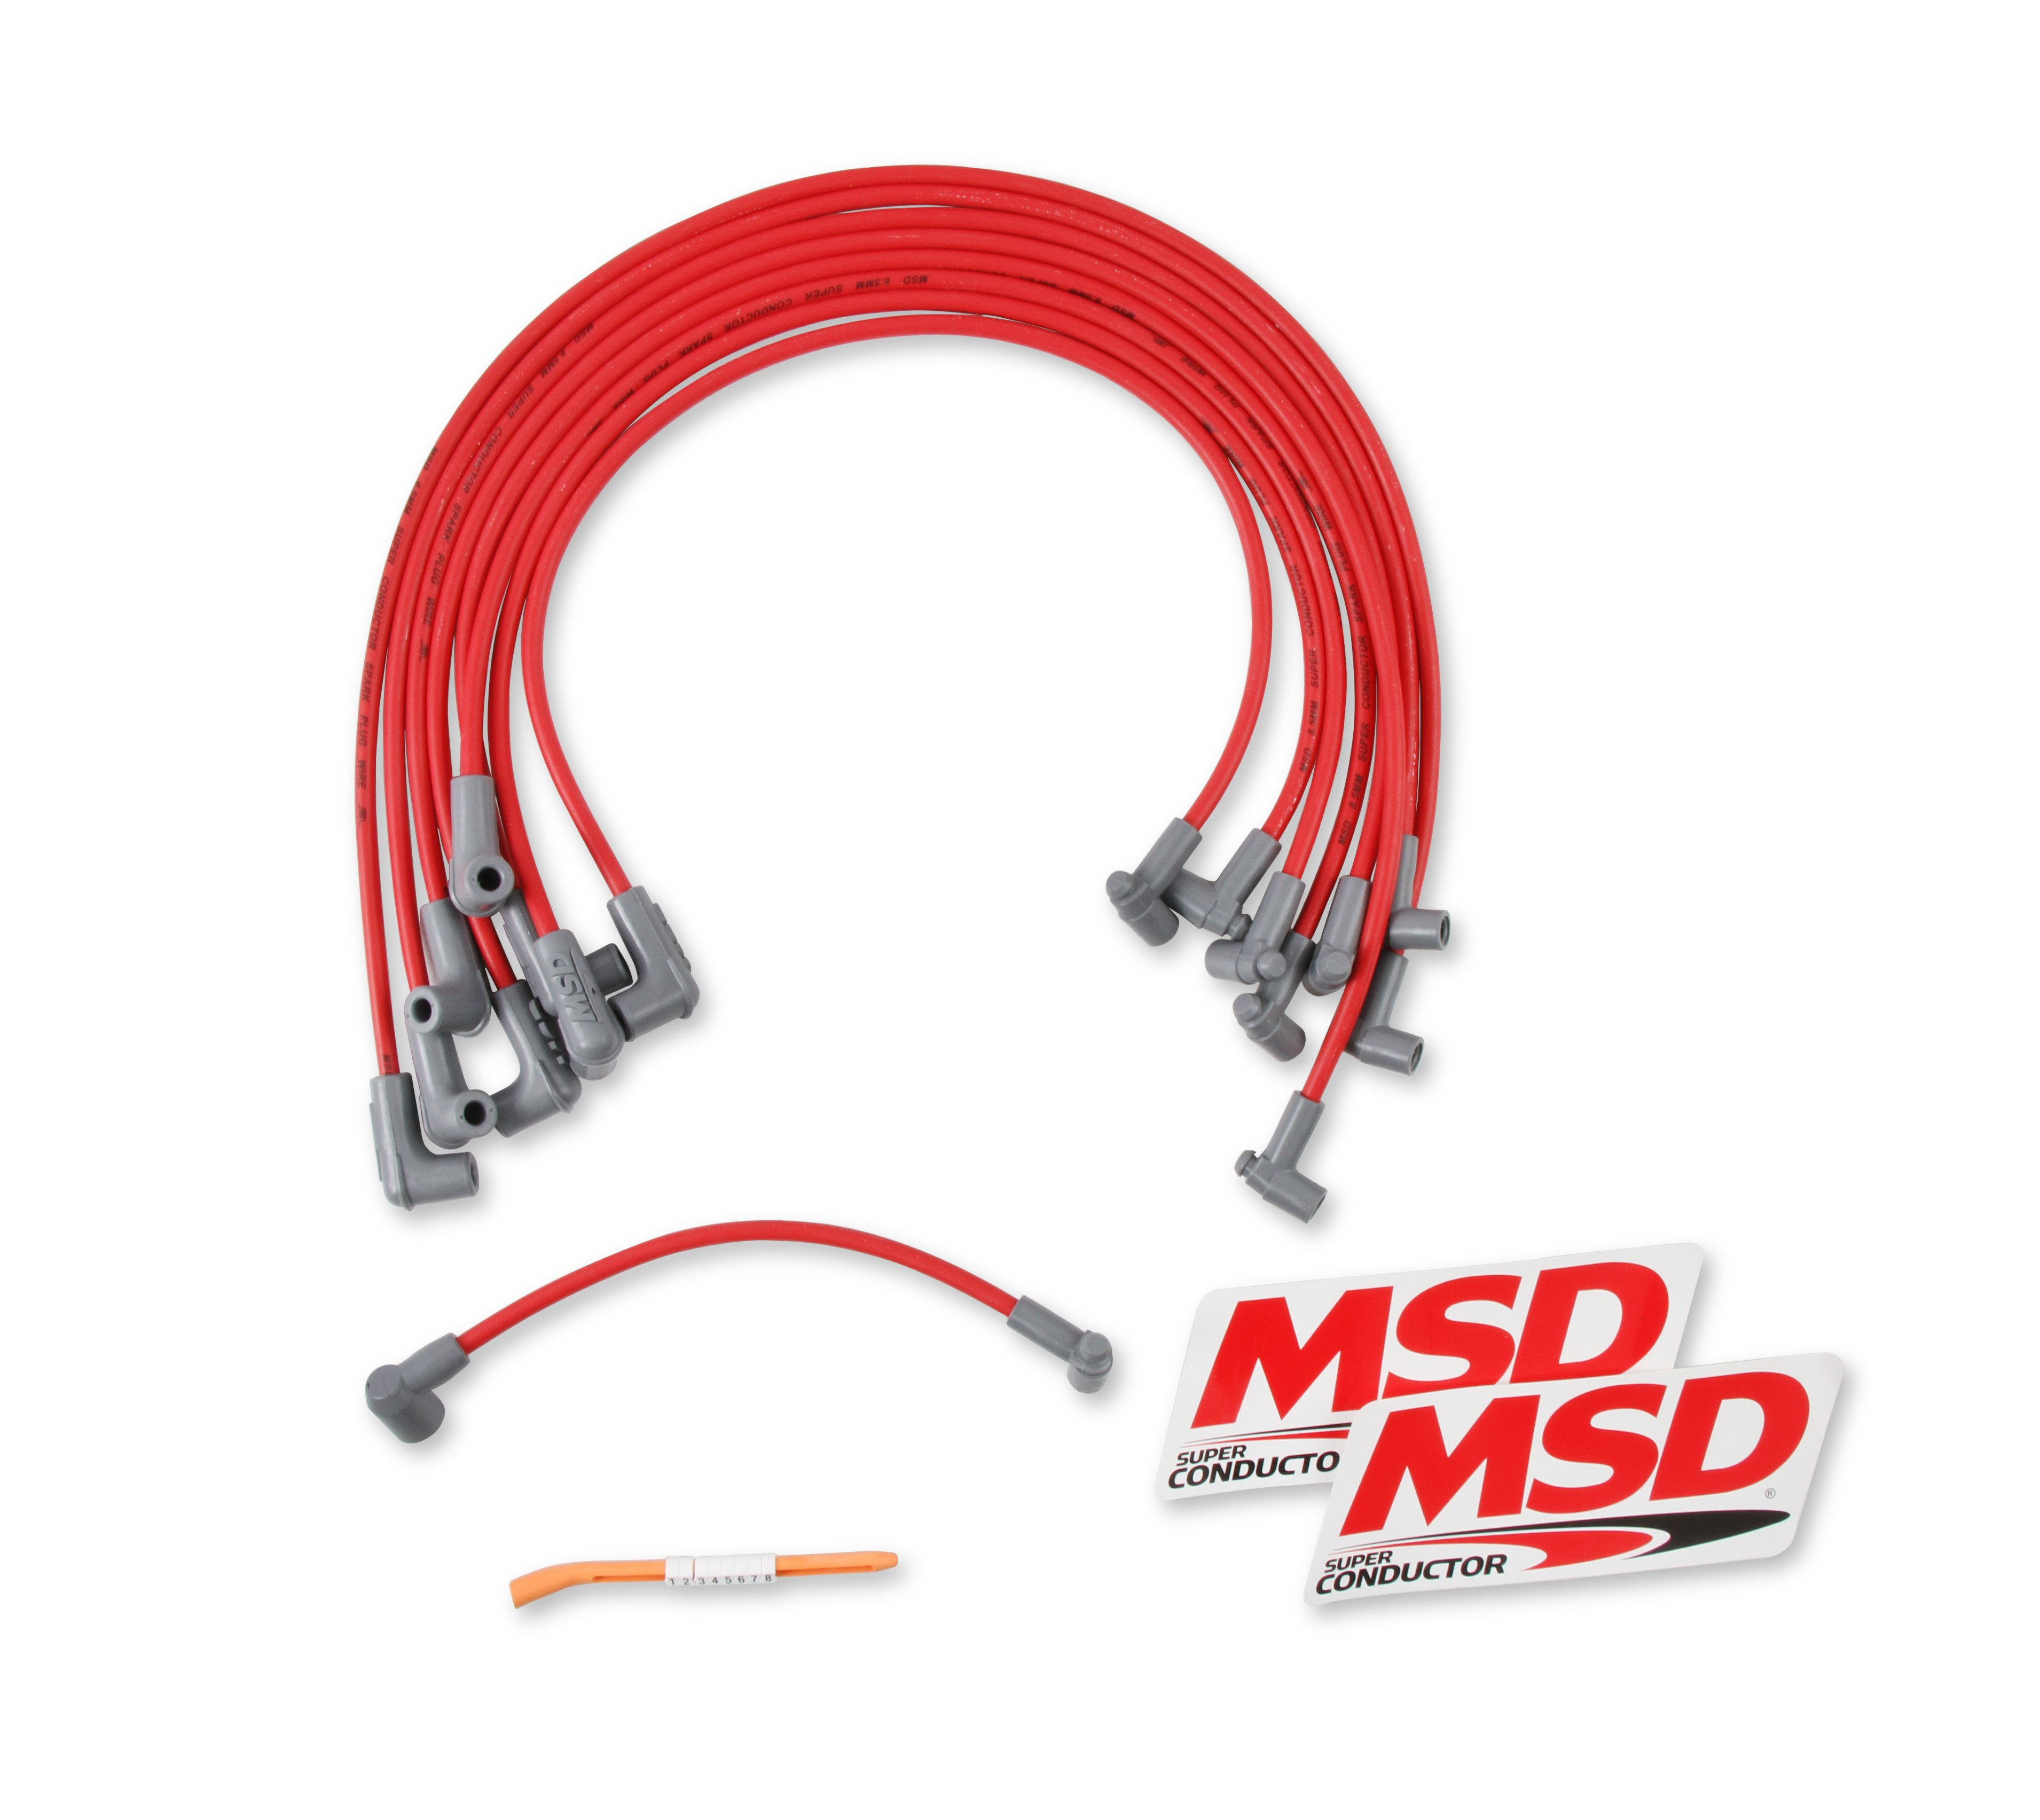 sbc thermostat wiring msd 35599 super conductor 8 5mm spark plug wire set  small block  msd 35599 super conductor 8 5mm spark